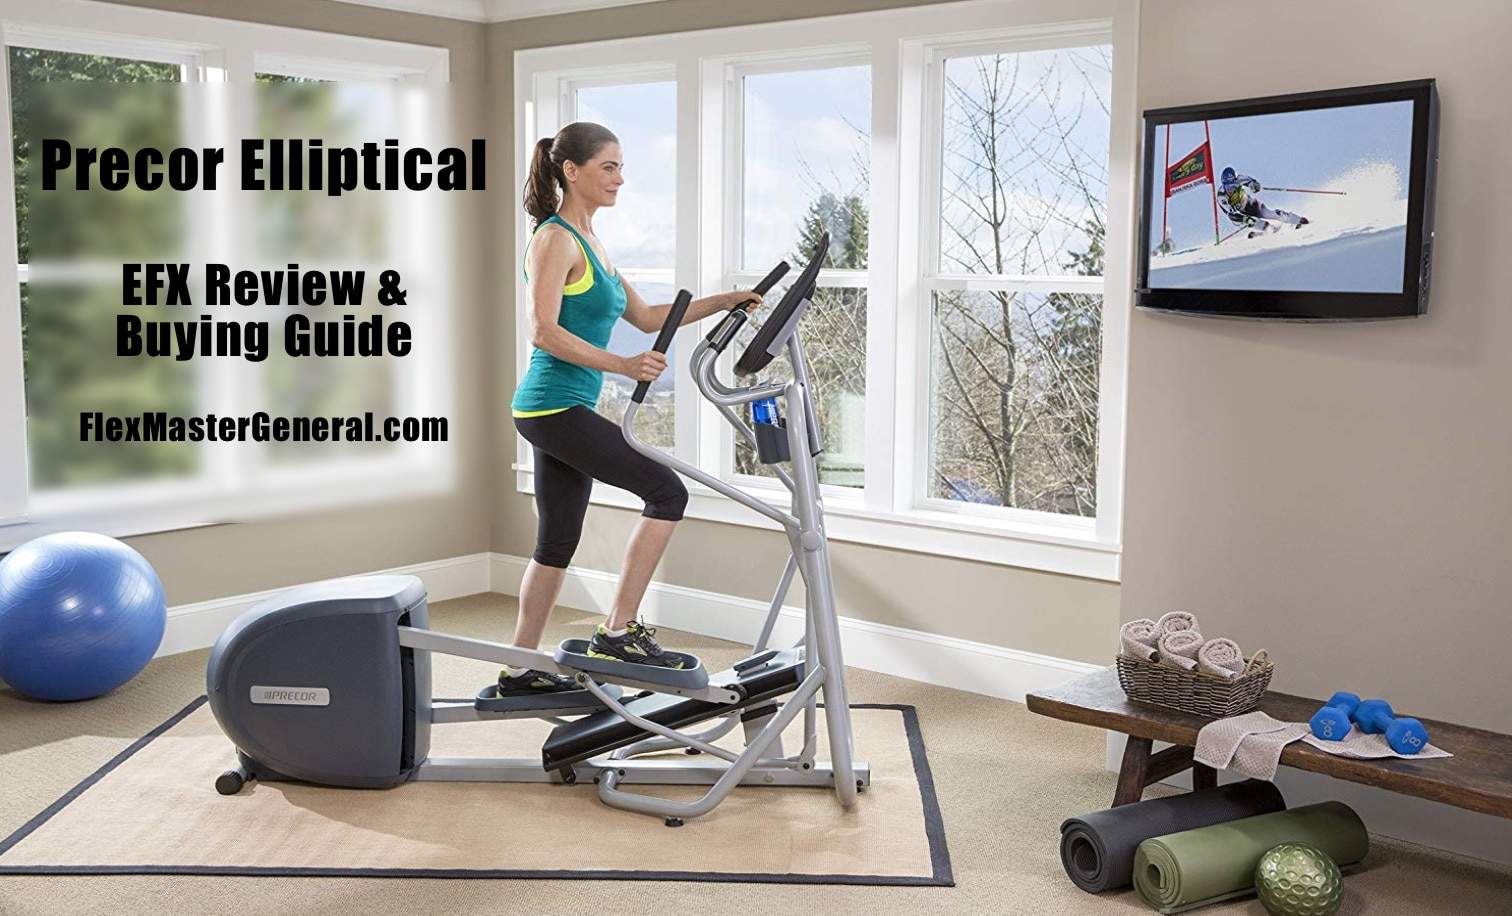 Precor Elliptical Reviews and Pricing Guide